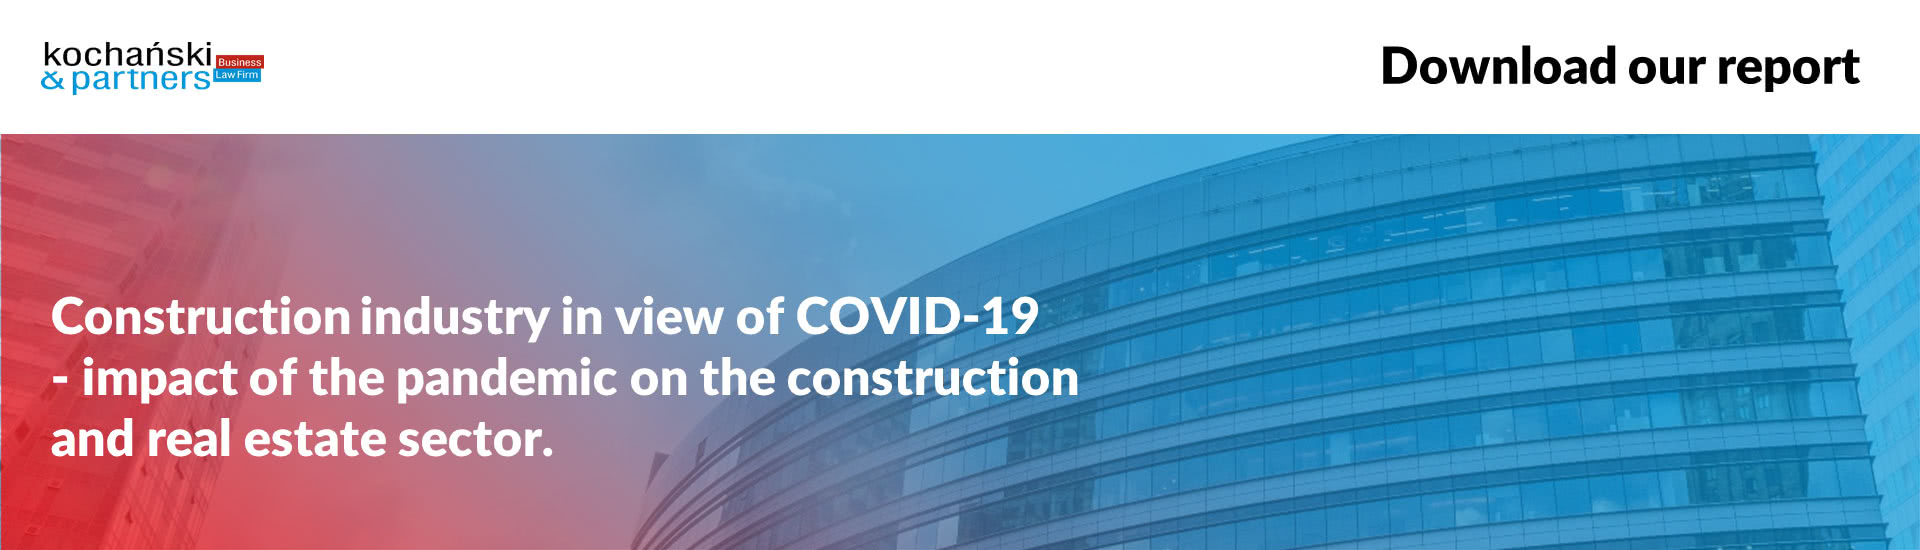 Construction industry in view of COVID-19